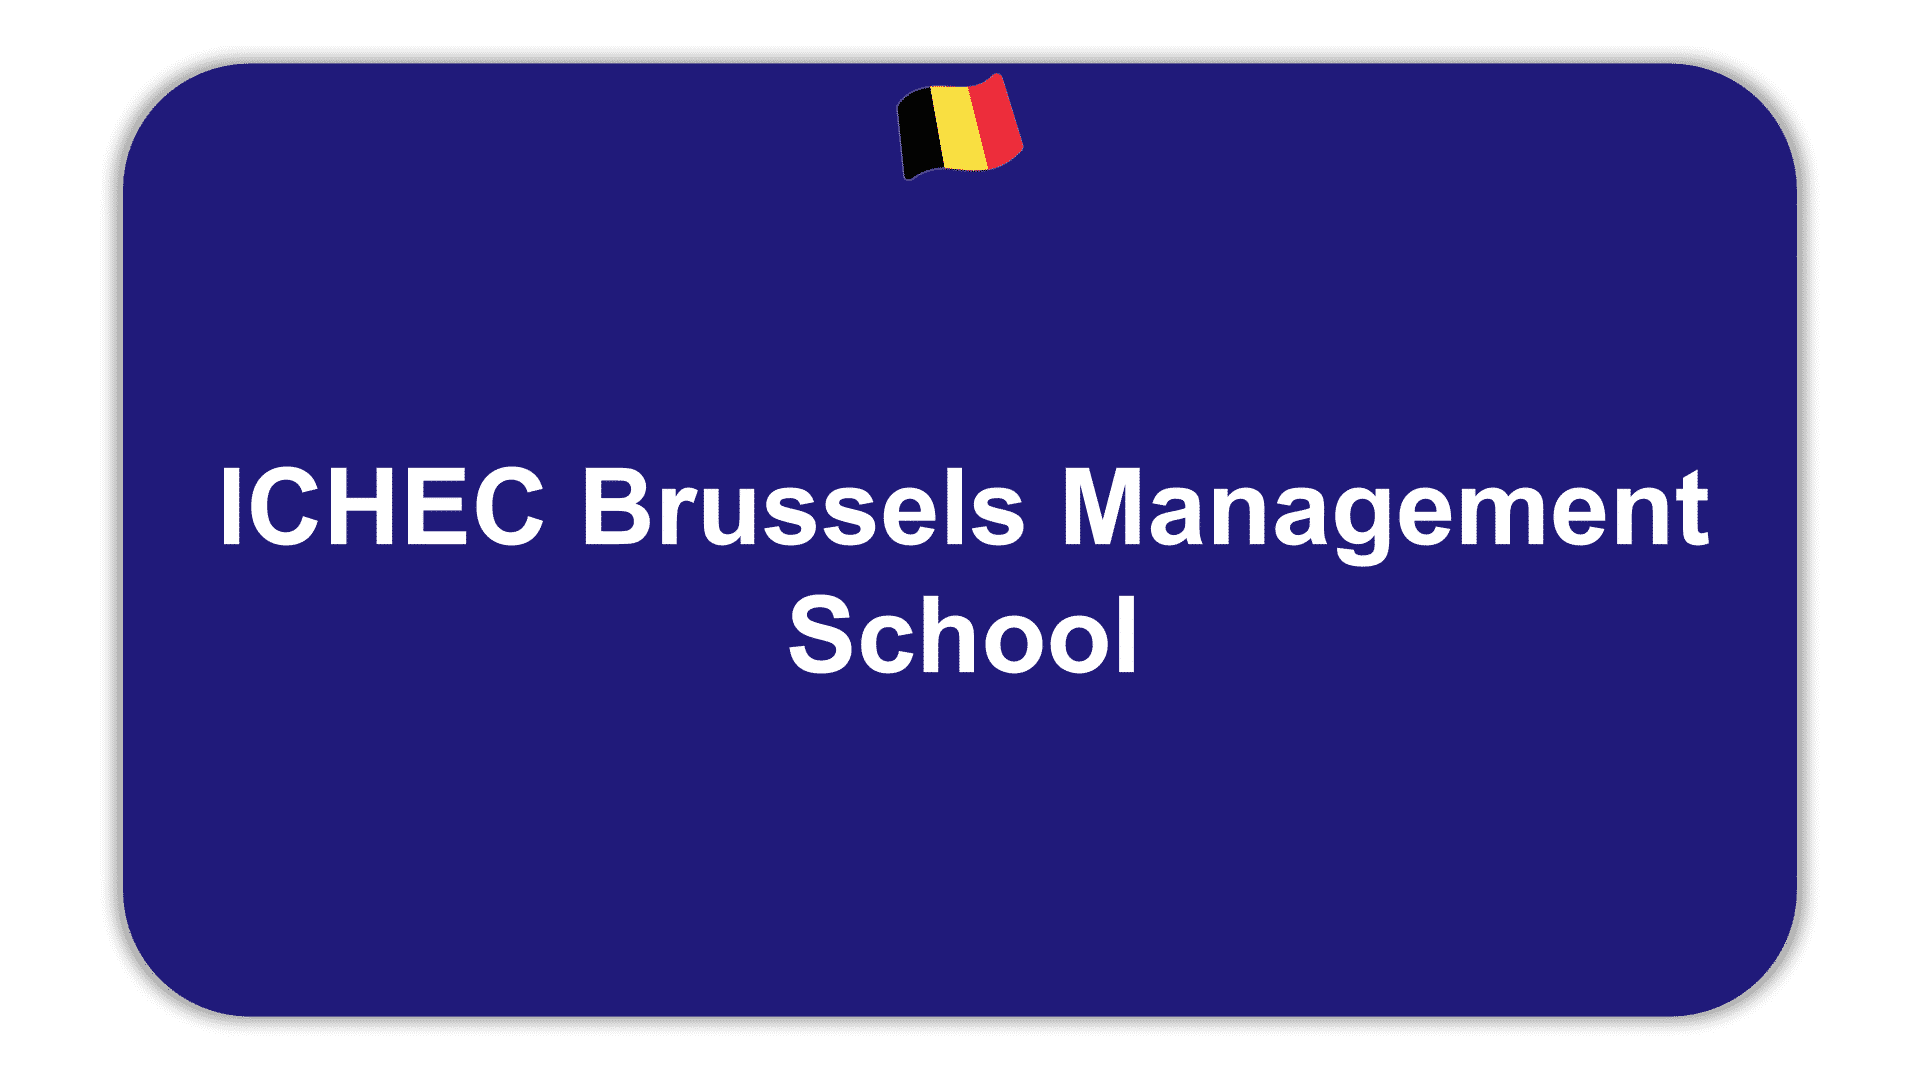 ICHEC Brussels Management School